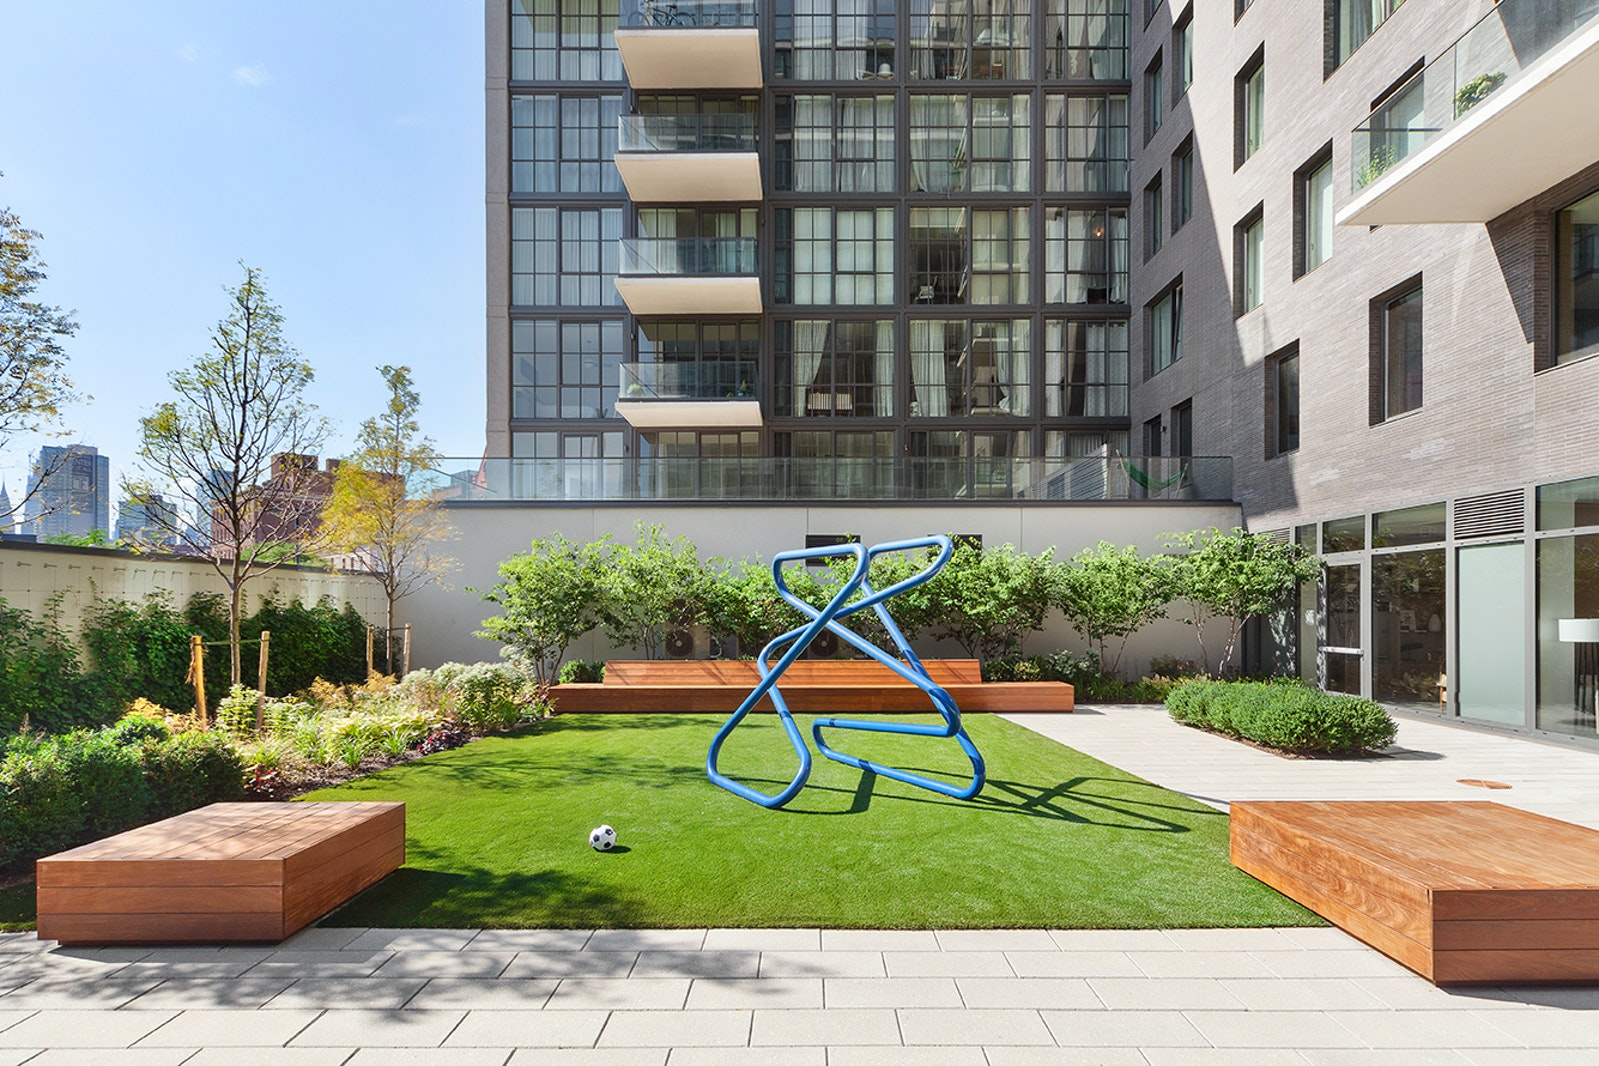 2218 Jackson Avenue 904, Long Island City, Queens, NY, 11101, $1,425,000, Property For Sale, Halstead Real Estate, Photo 14